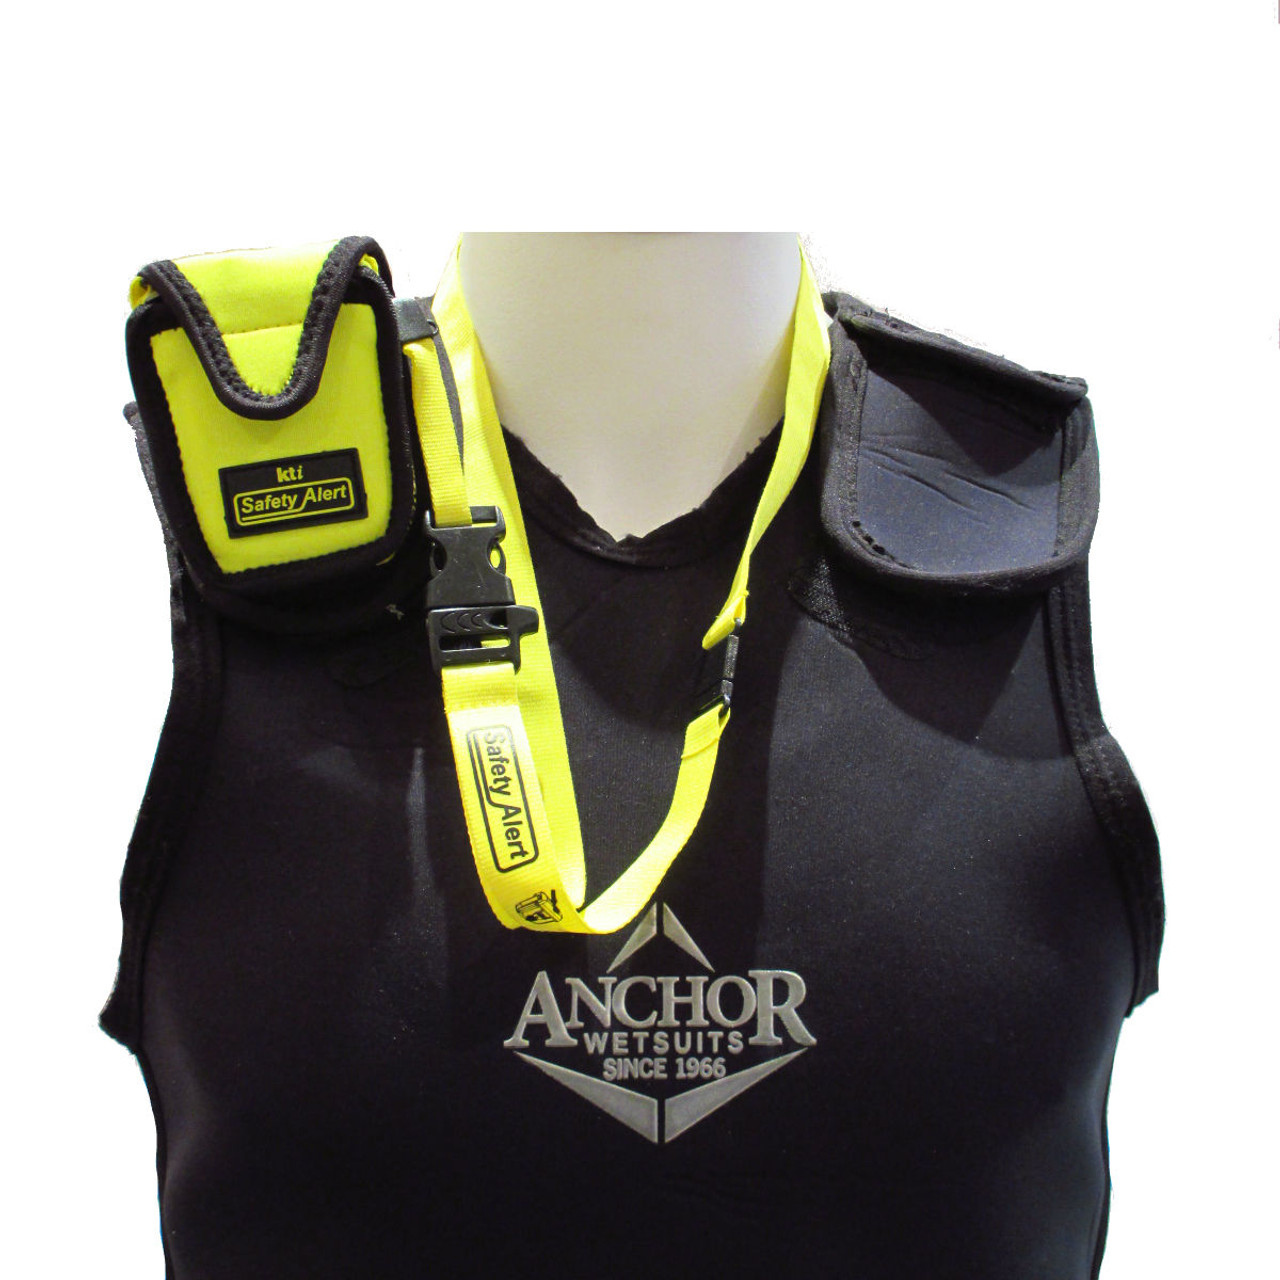 KTI Safety Alert Marine Pouch is designed to suit the SA2G & SA2GN Personal Locator Beacon attached to your wet-suit.